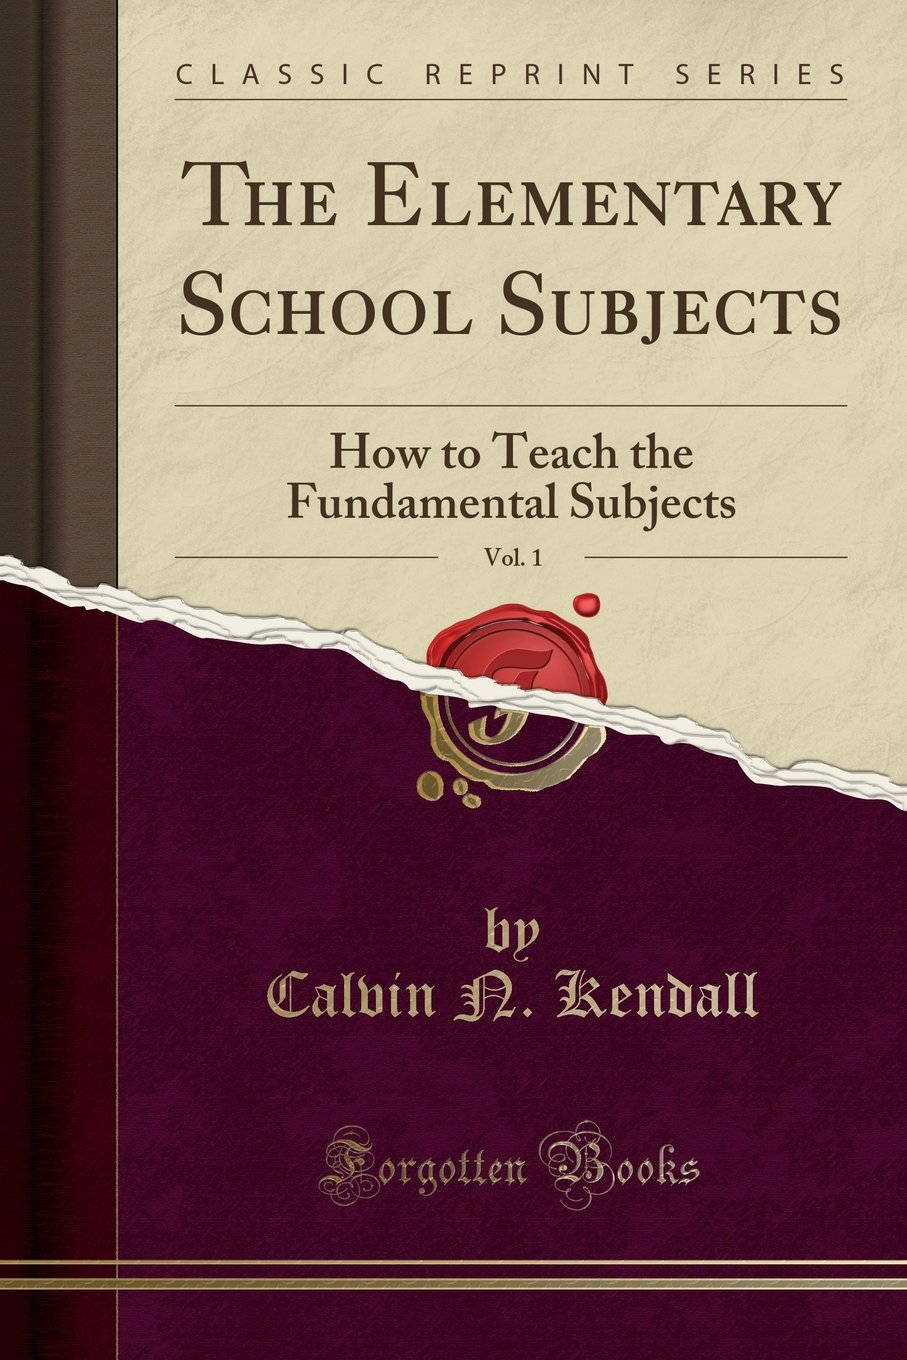 The Elementary School Subjects, Vol. 1: How to Teach the Fundamental Subjects (Classic Reprint) ebook